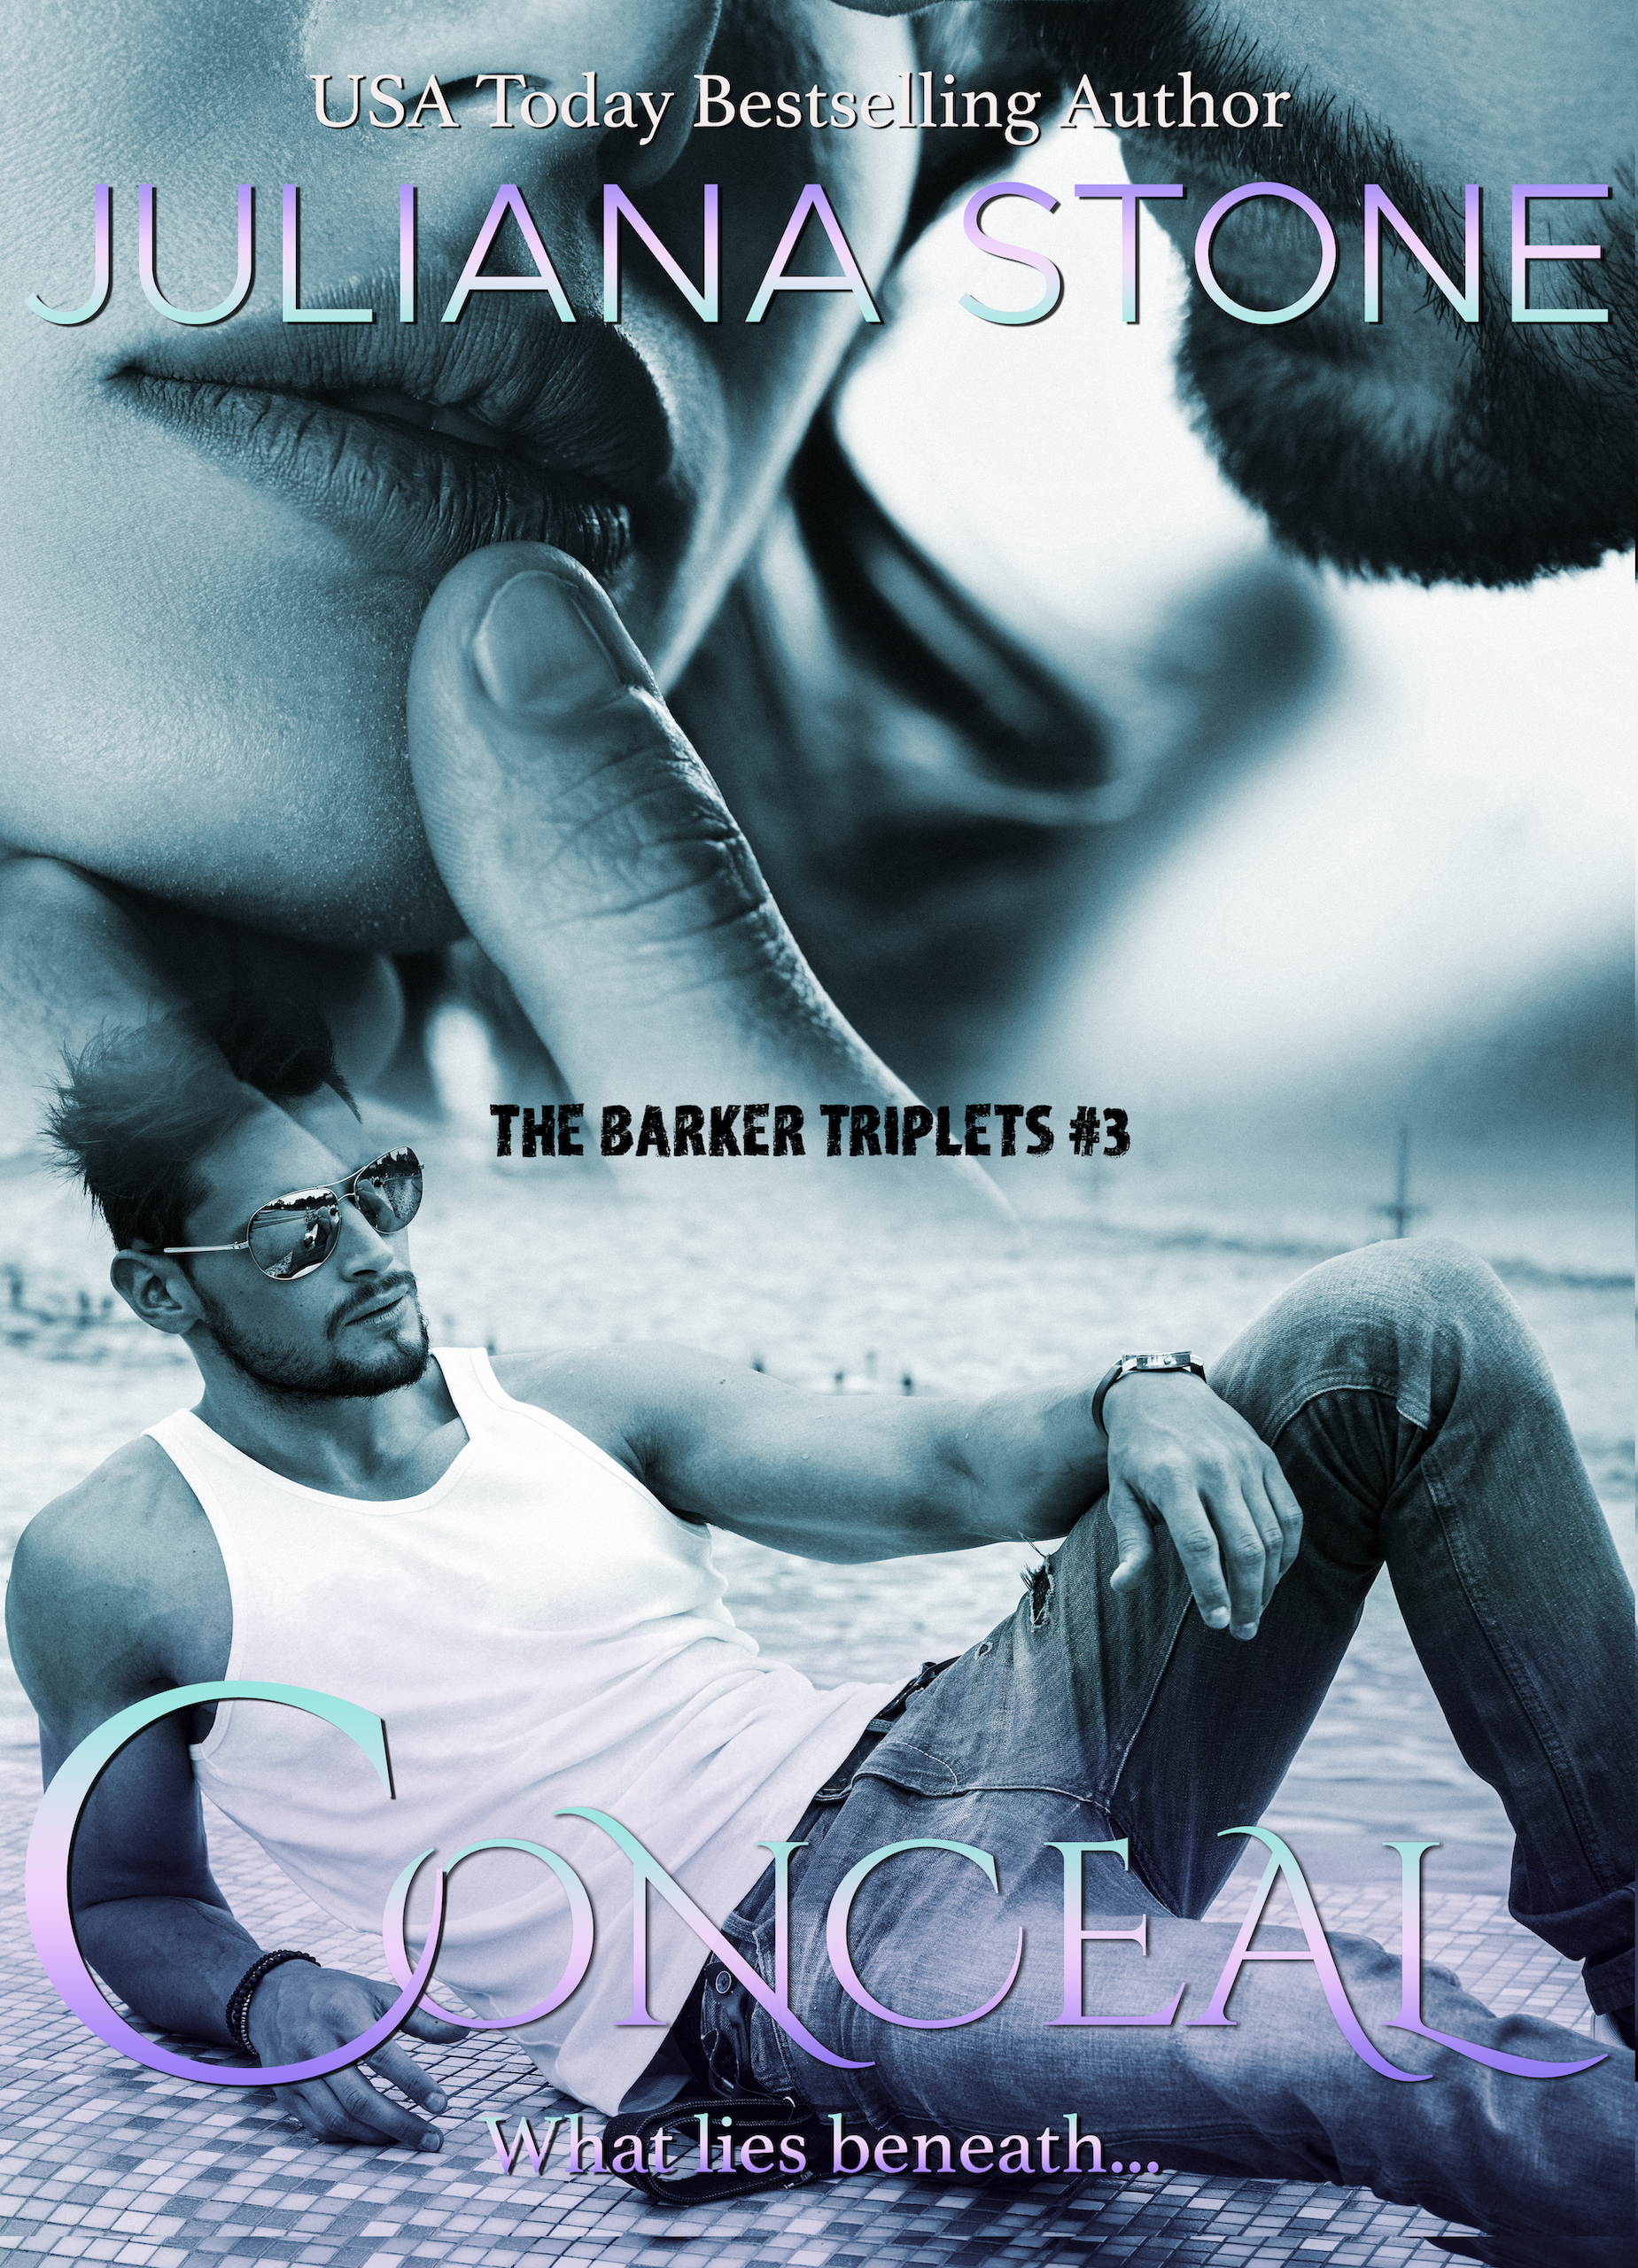 Conceal by Juliana Stone